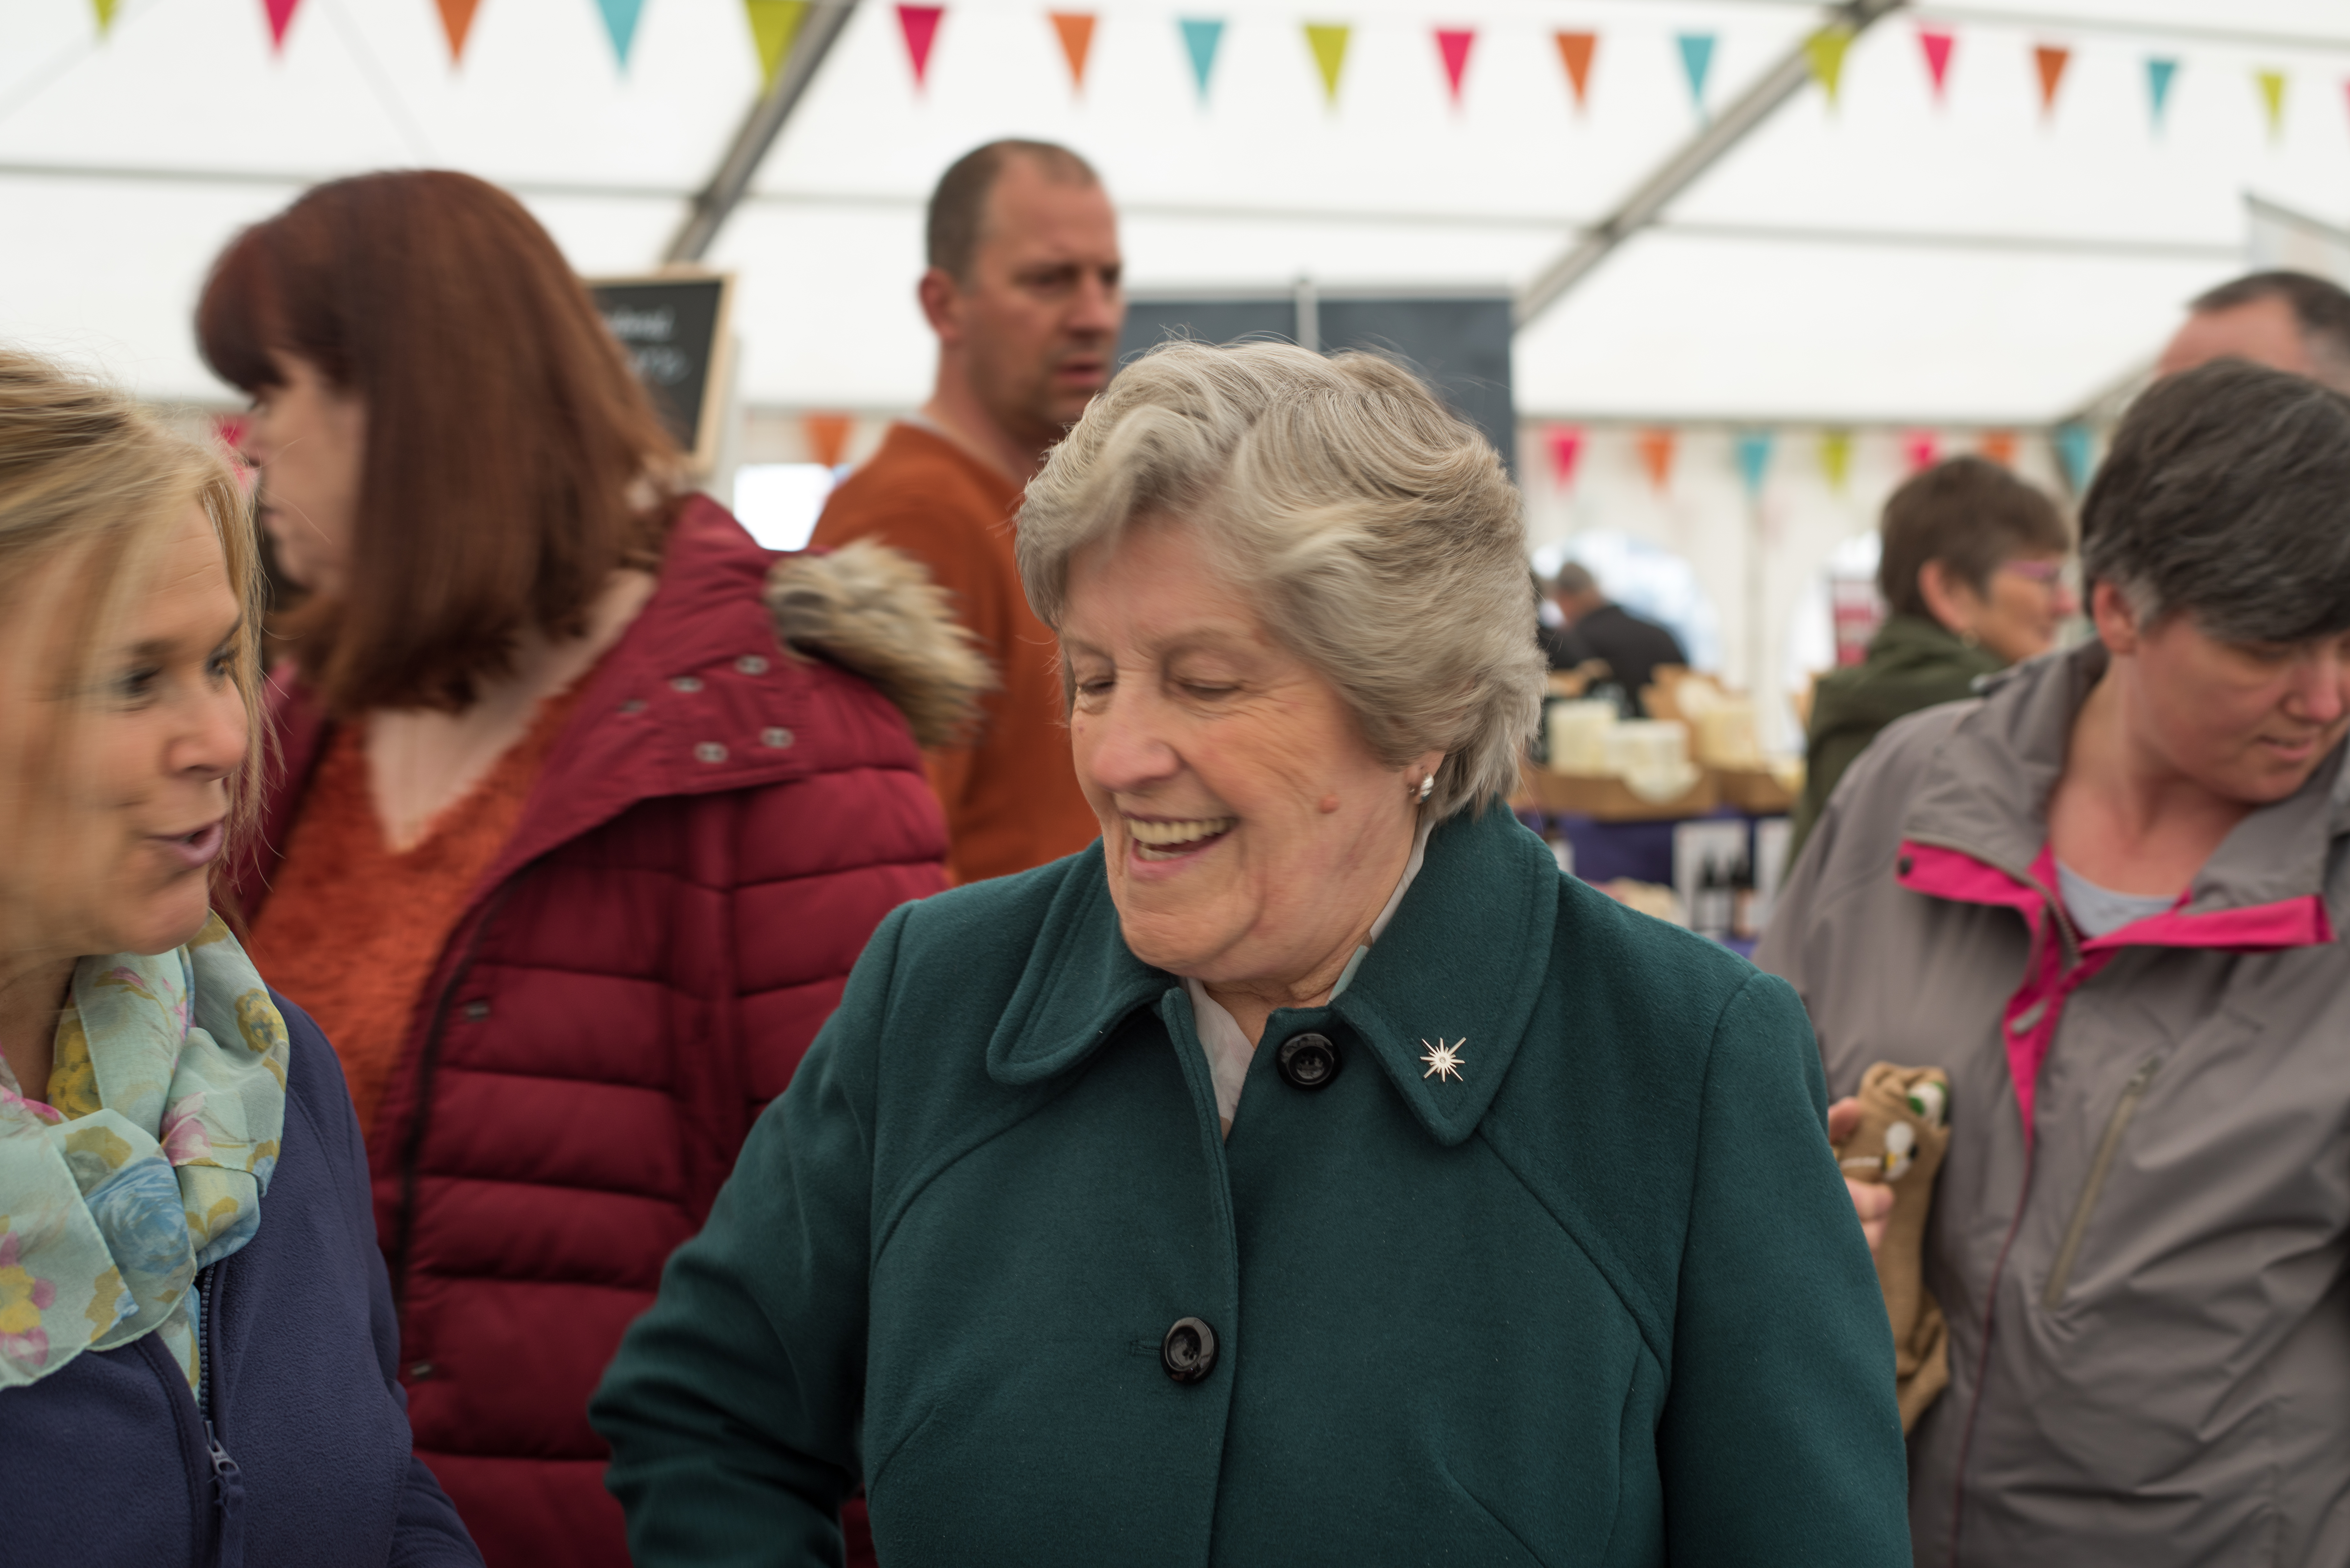 A lady in a green coat smiling as she shops inside the marquee at Stockton Chic Vintique  6th April